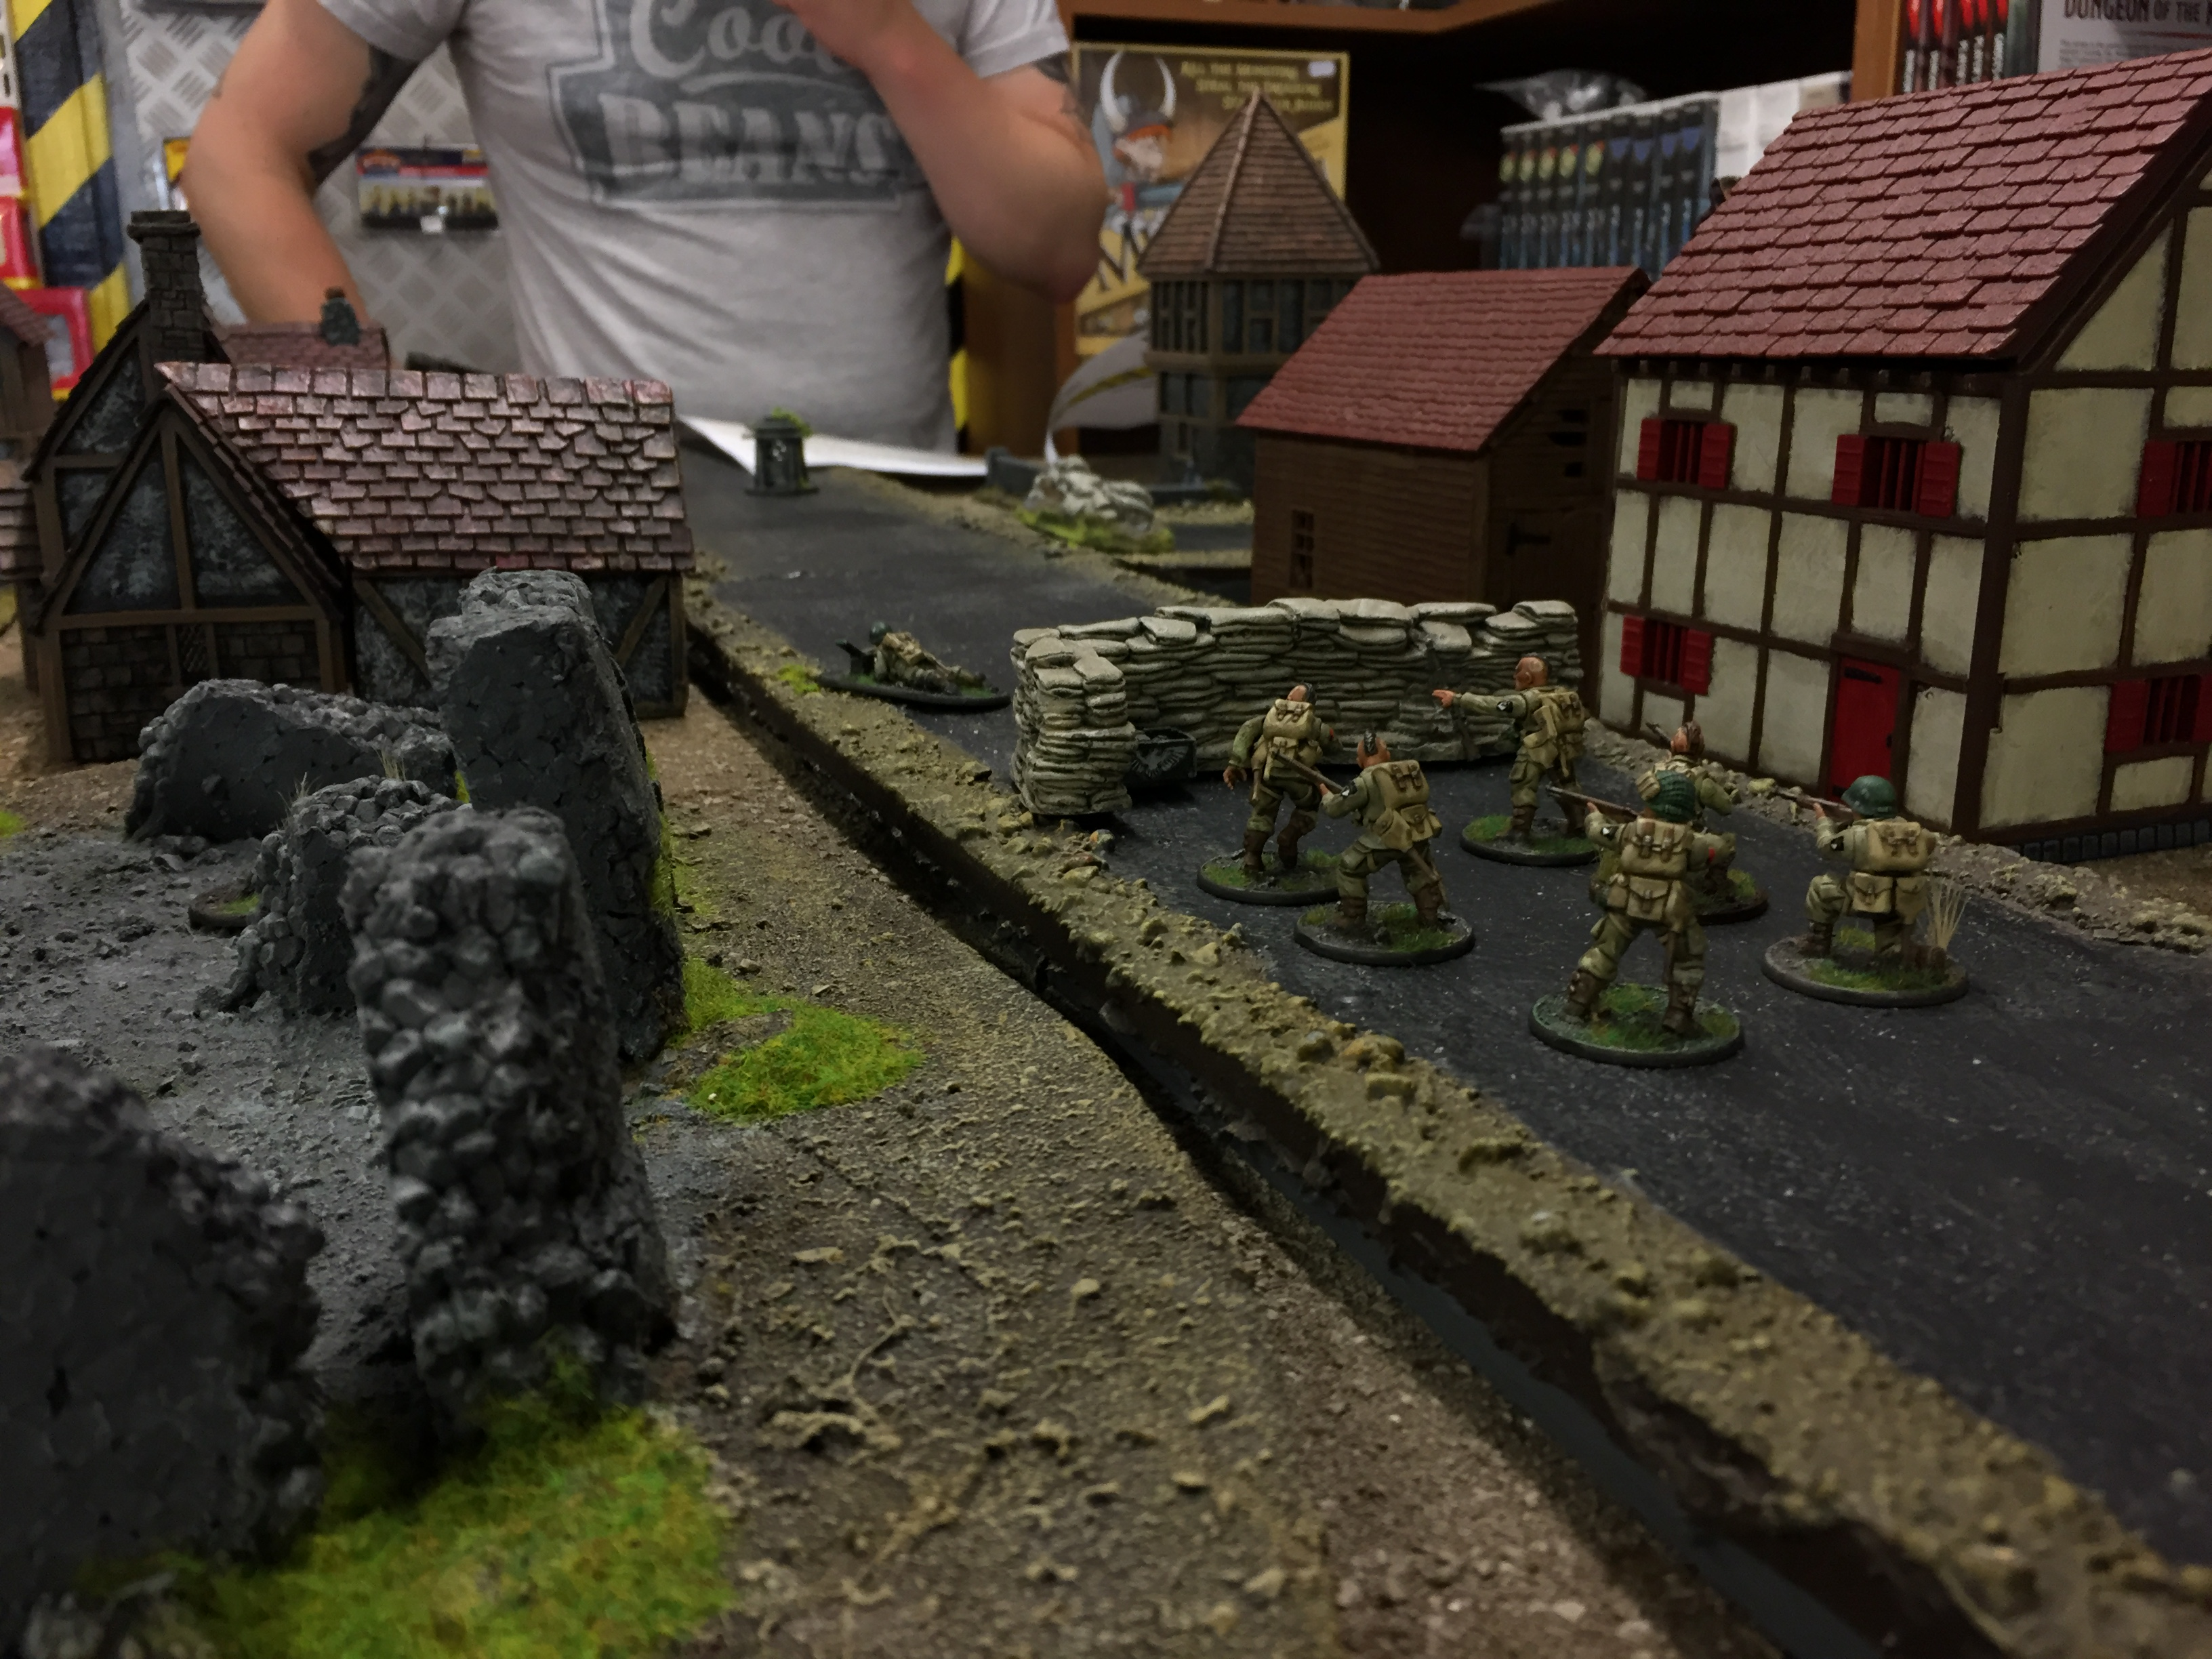 Yossarian command versus 37th Mountain Division in a fierce infantry engagement